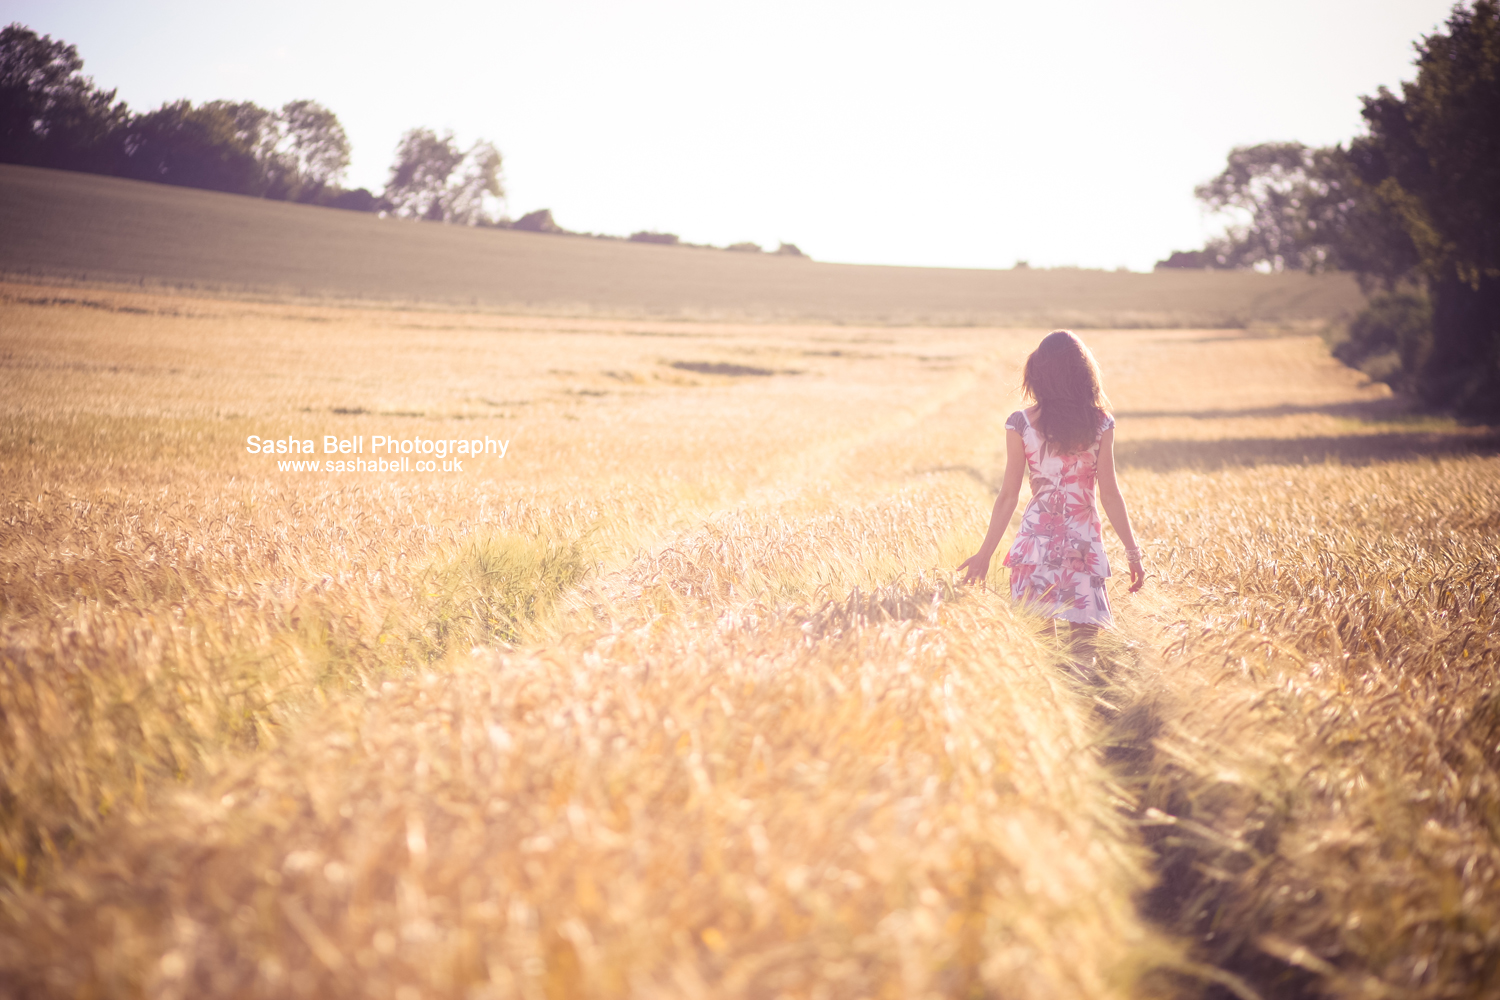 Beauty in the Barley – Day 290/365